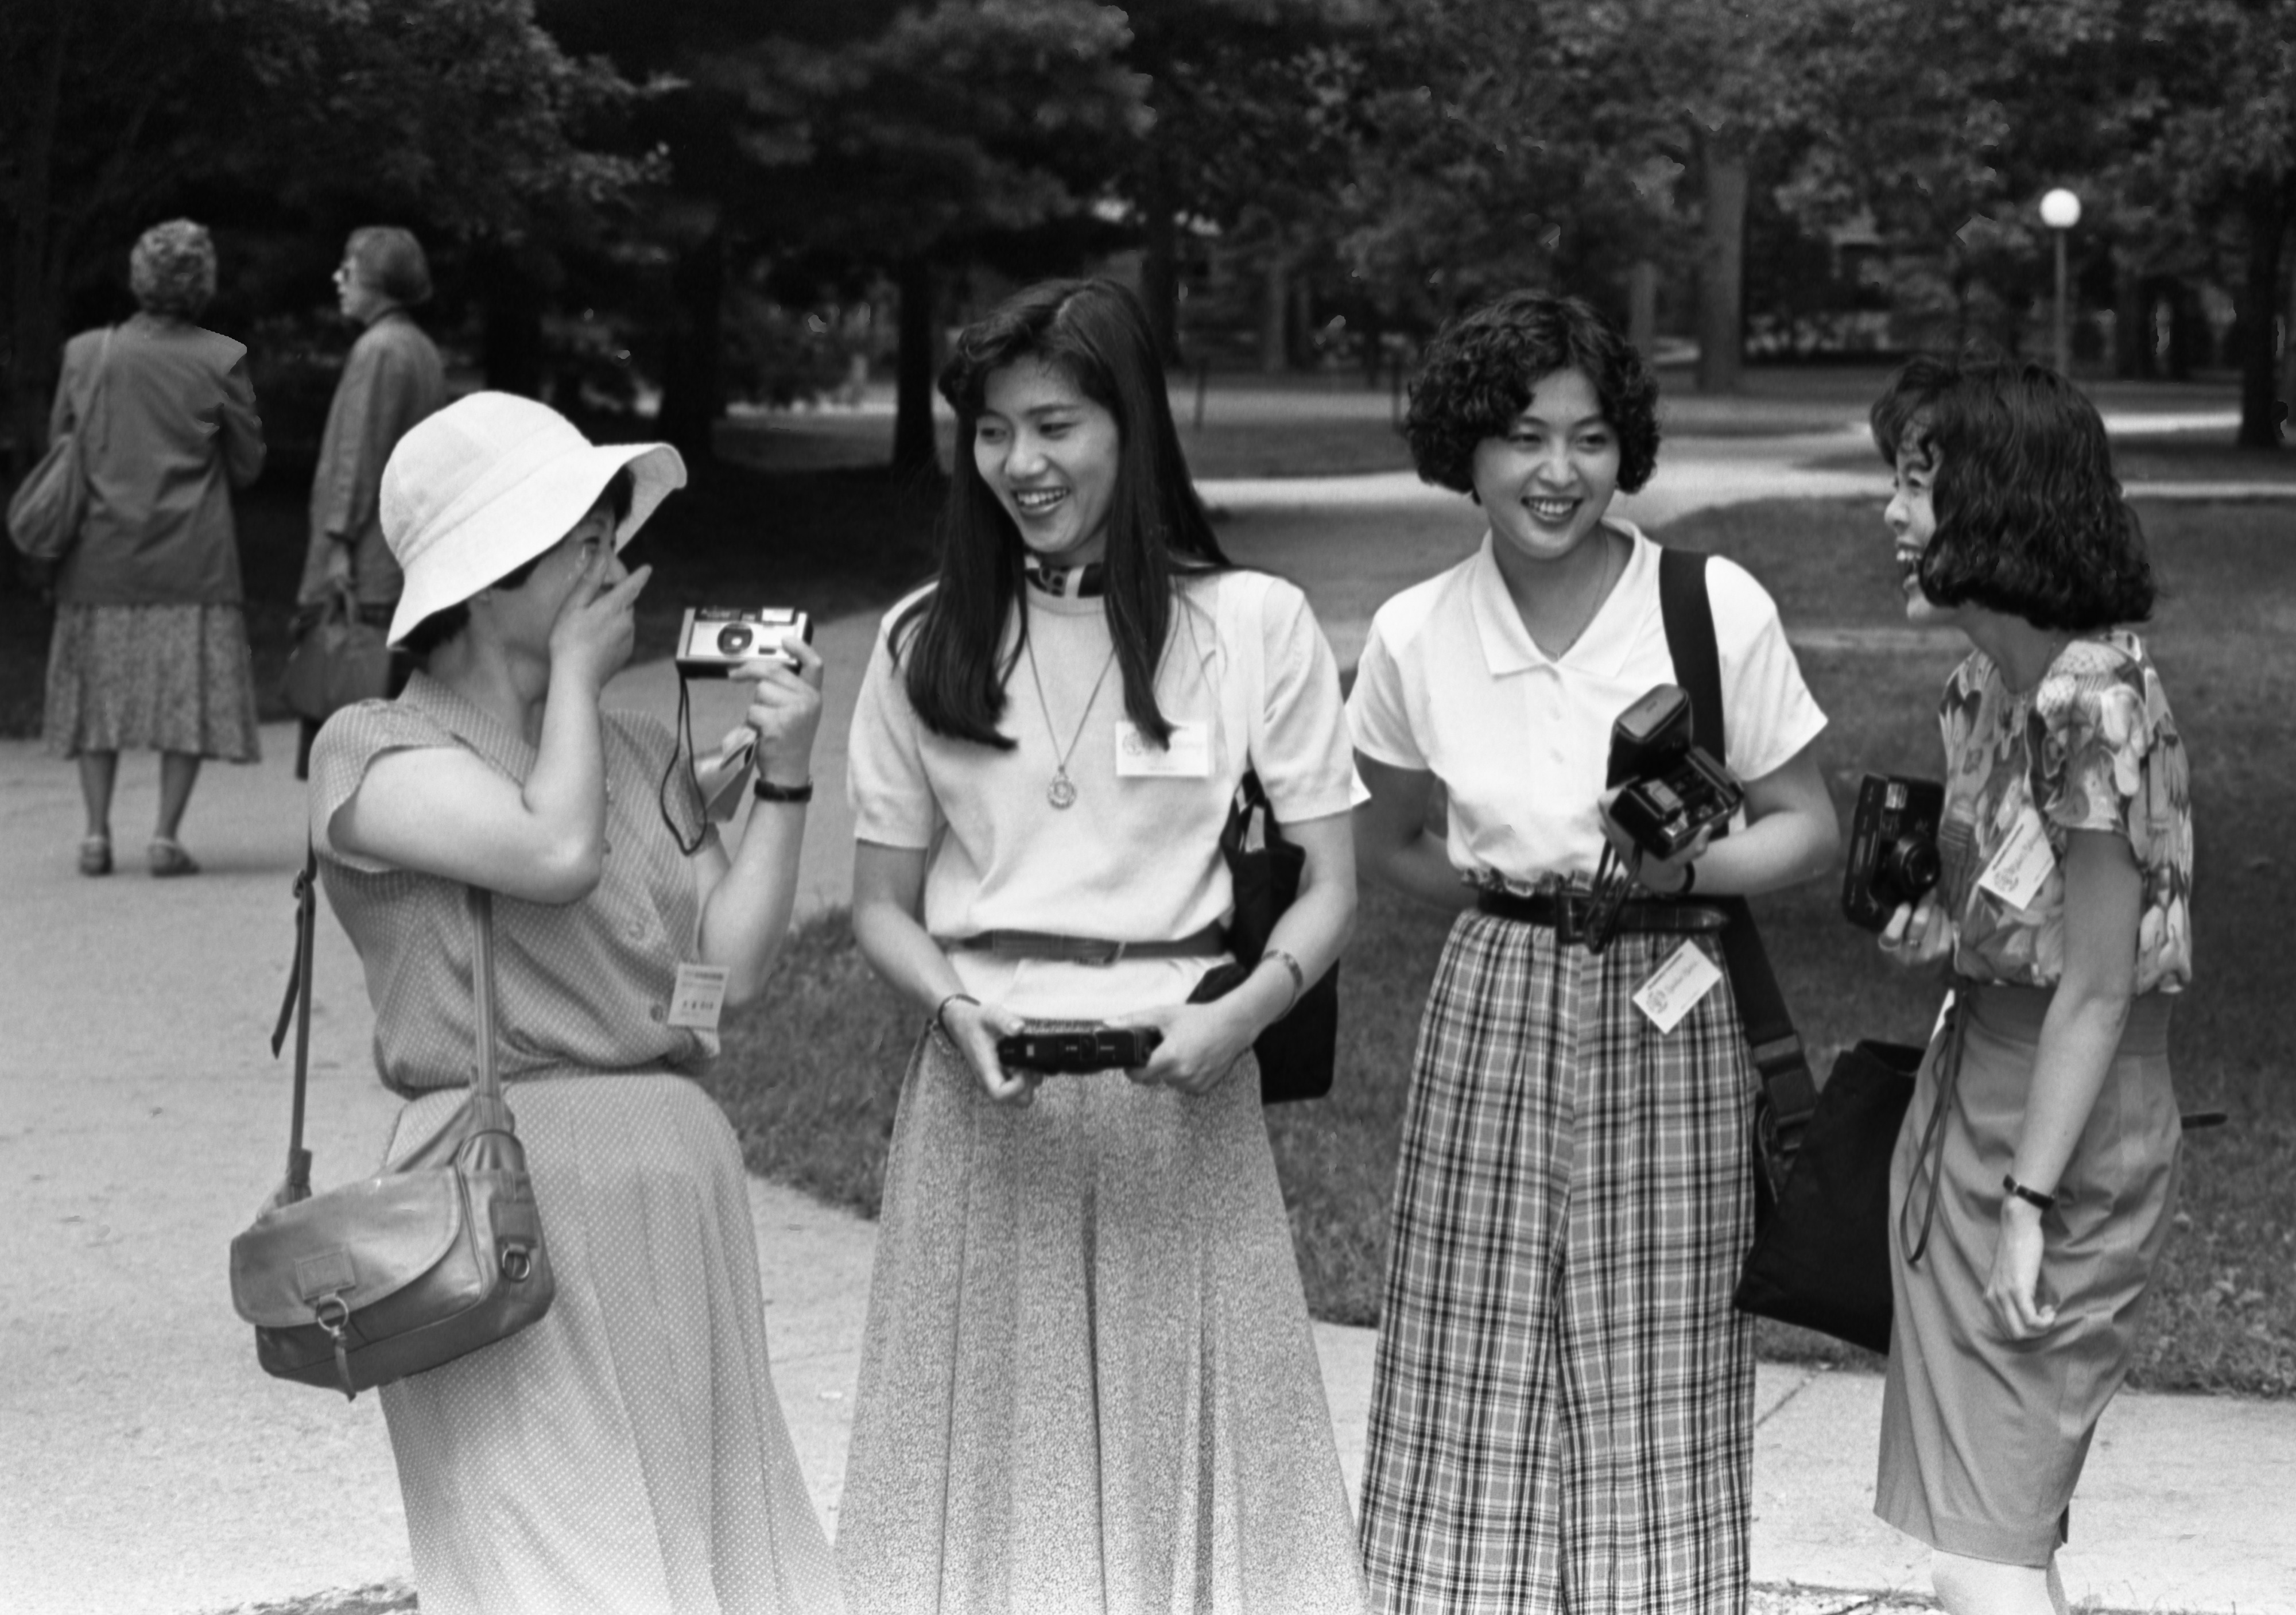 Visitors From Hikone, Japan, On Tour Of Campus, August 25, 1990 image